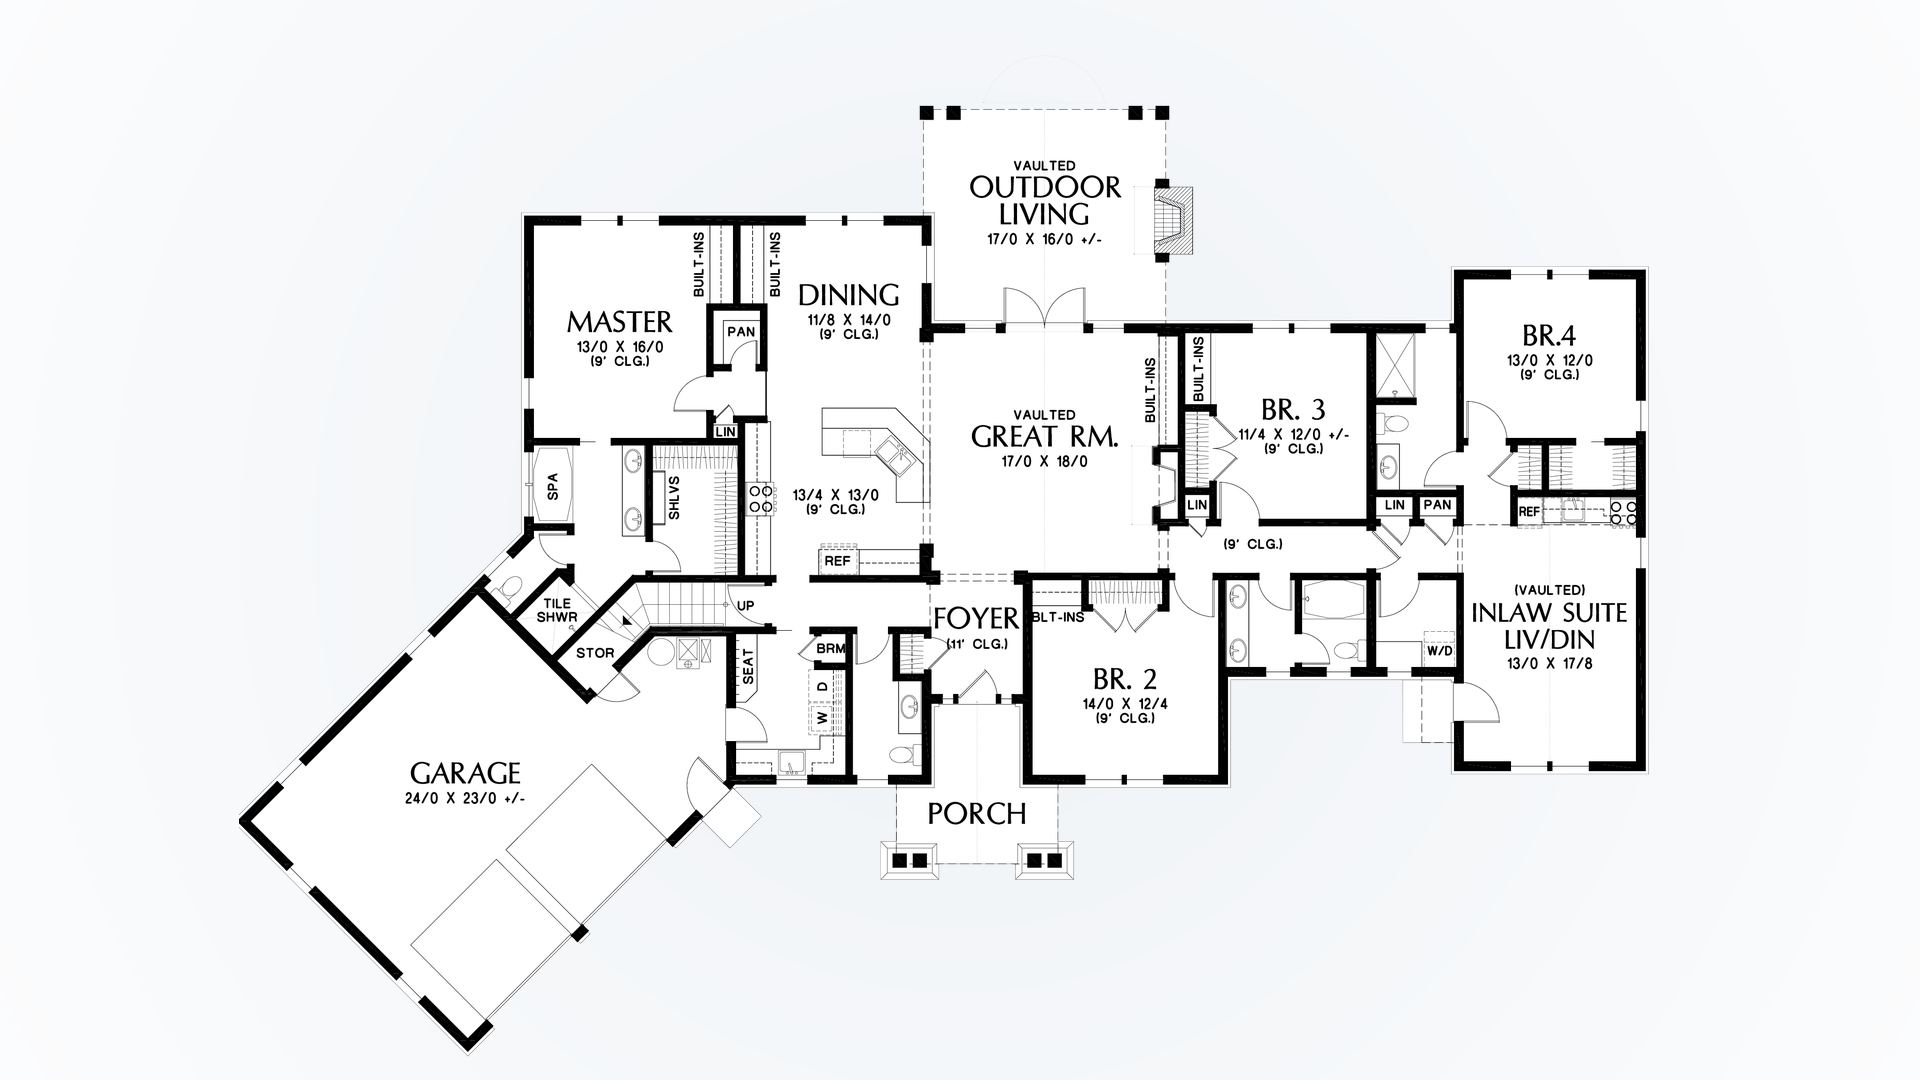 mascord house plan 1248a the bishop image for bishop in law suite